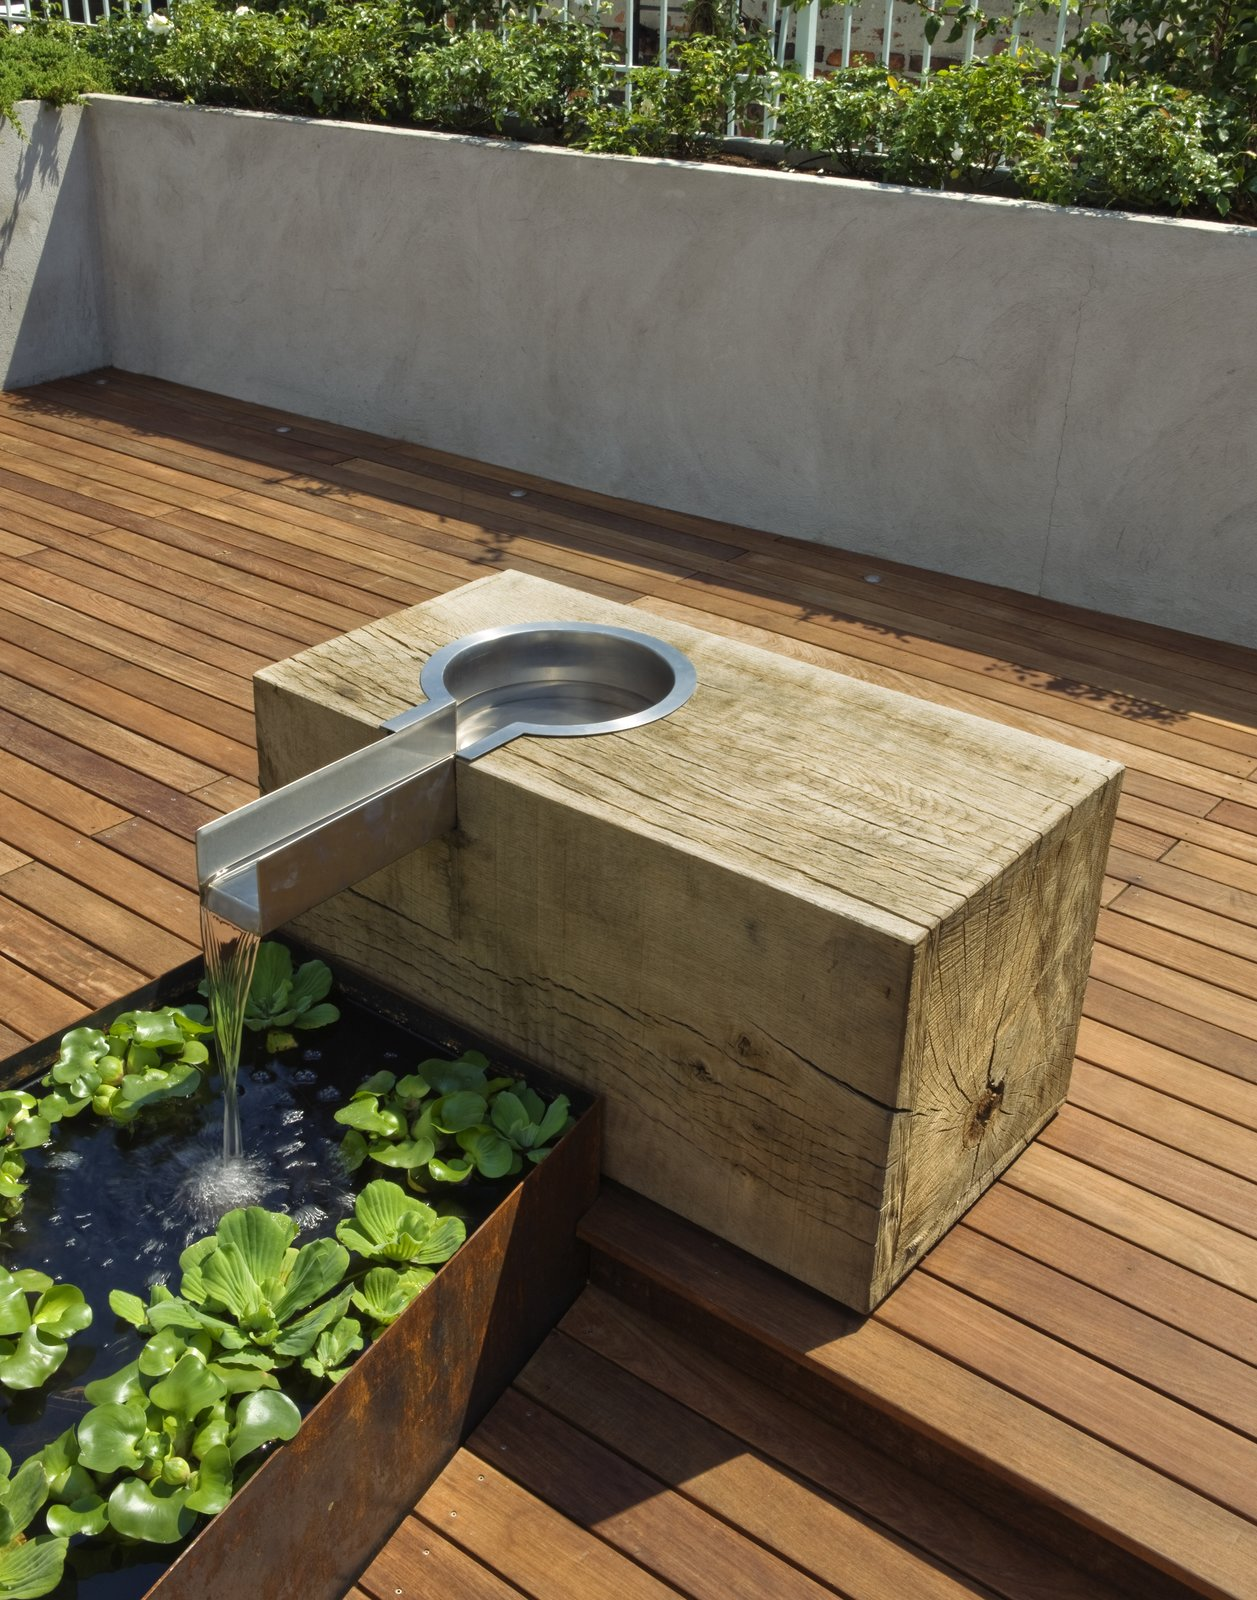 The oak block was sourced from a mill outside of Philadelphia.  The block was rough sawn and left unfinished to weather and develop a patina.  The lined water trough is fabricated from Cor-Ten steel.  East Village Roof Garden